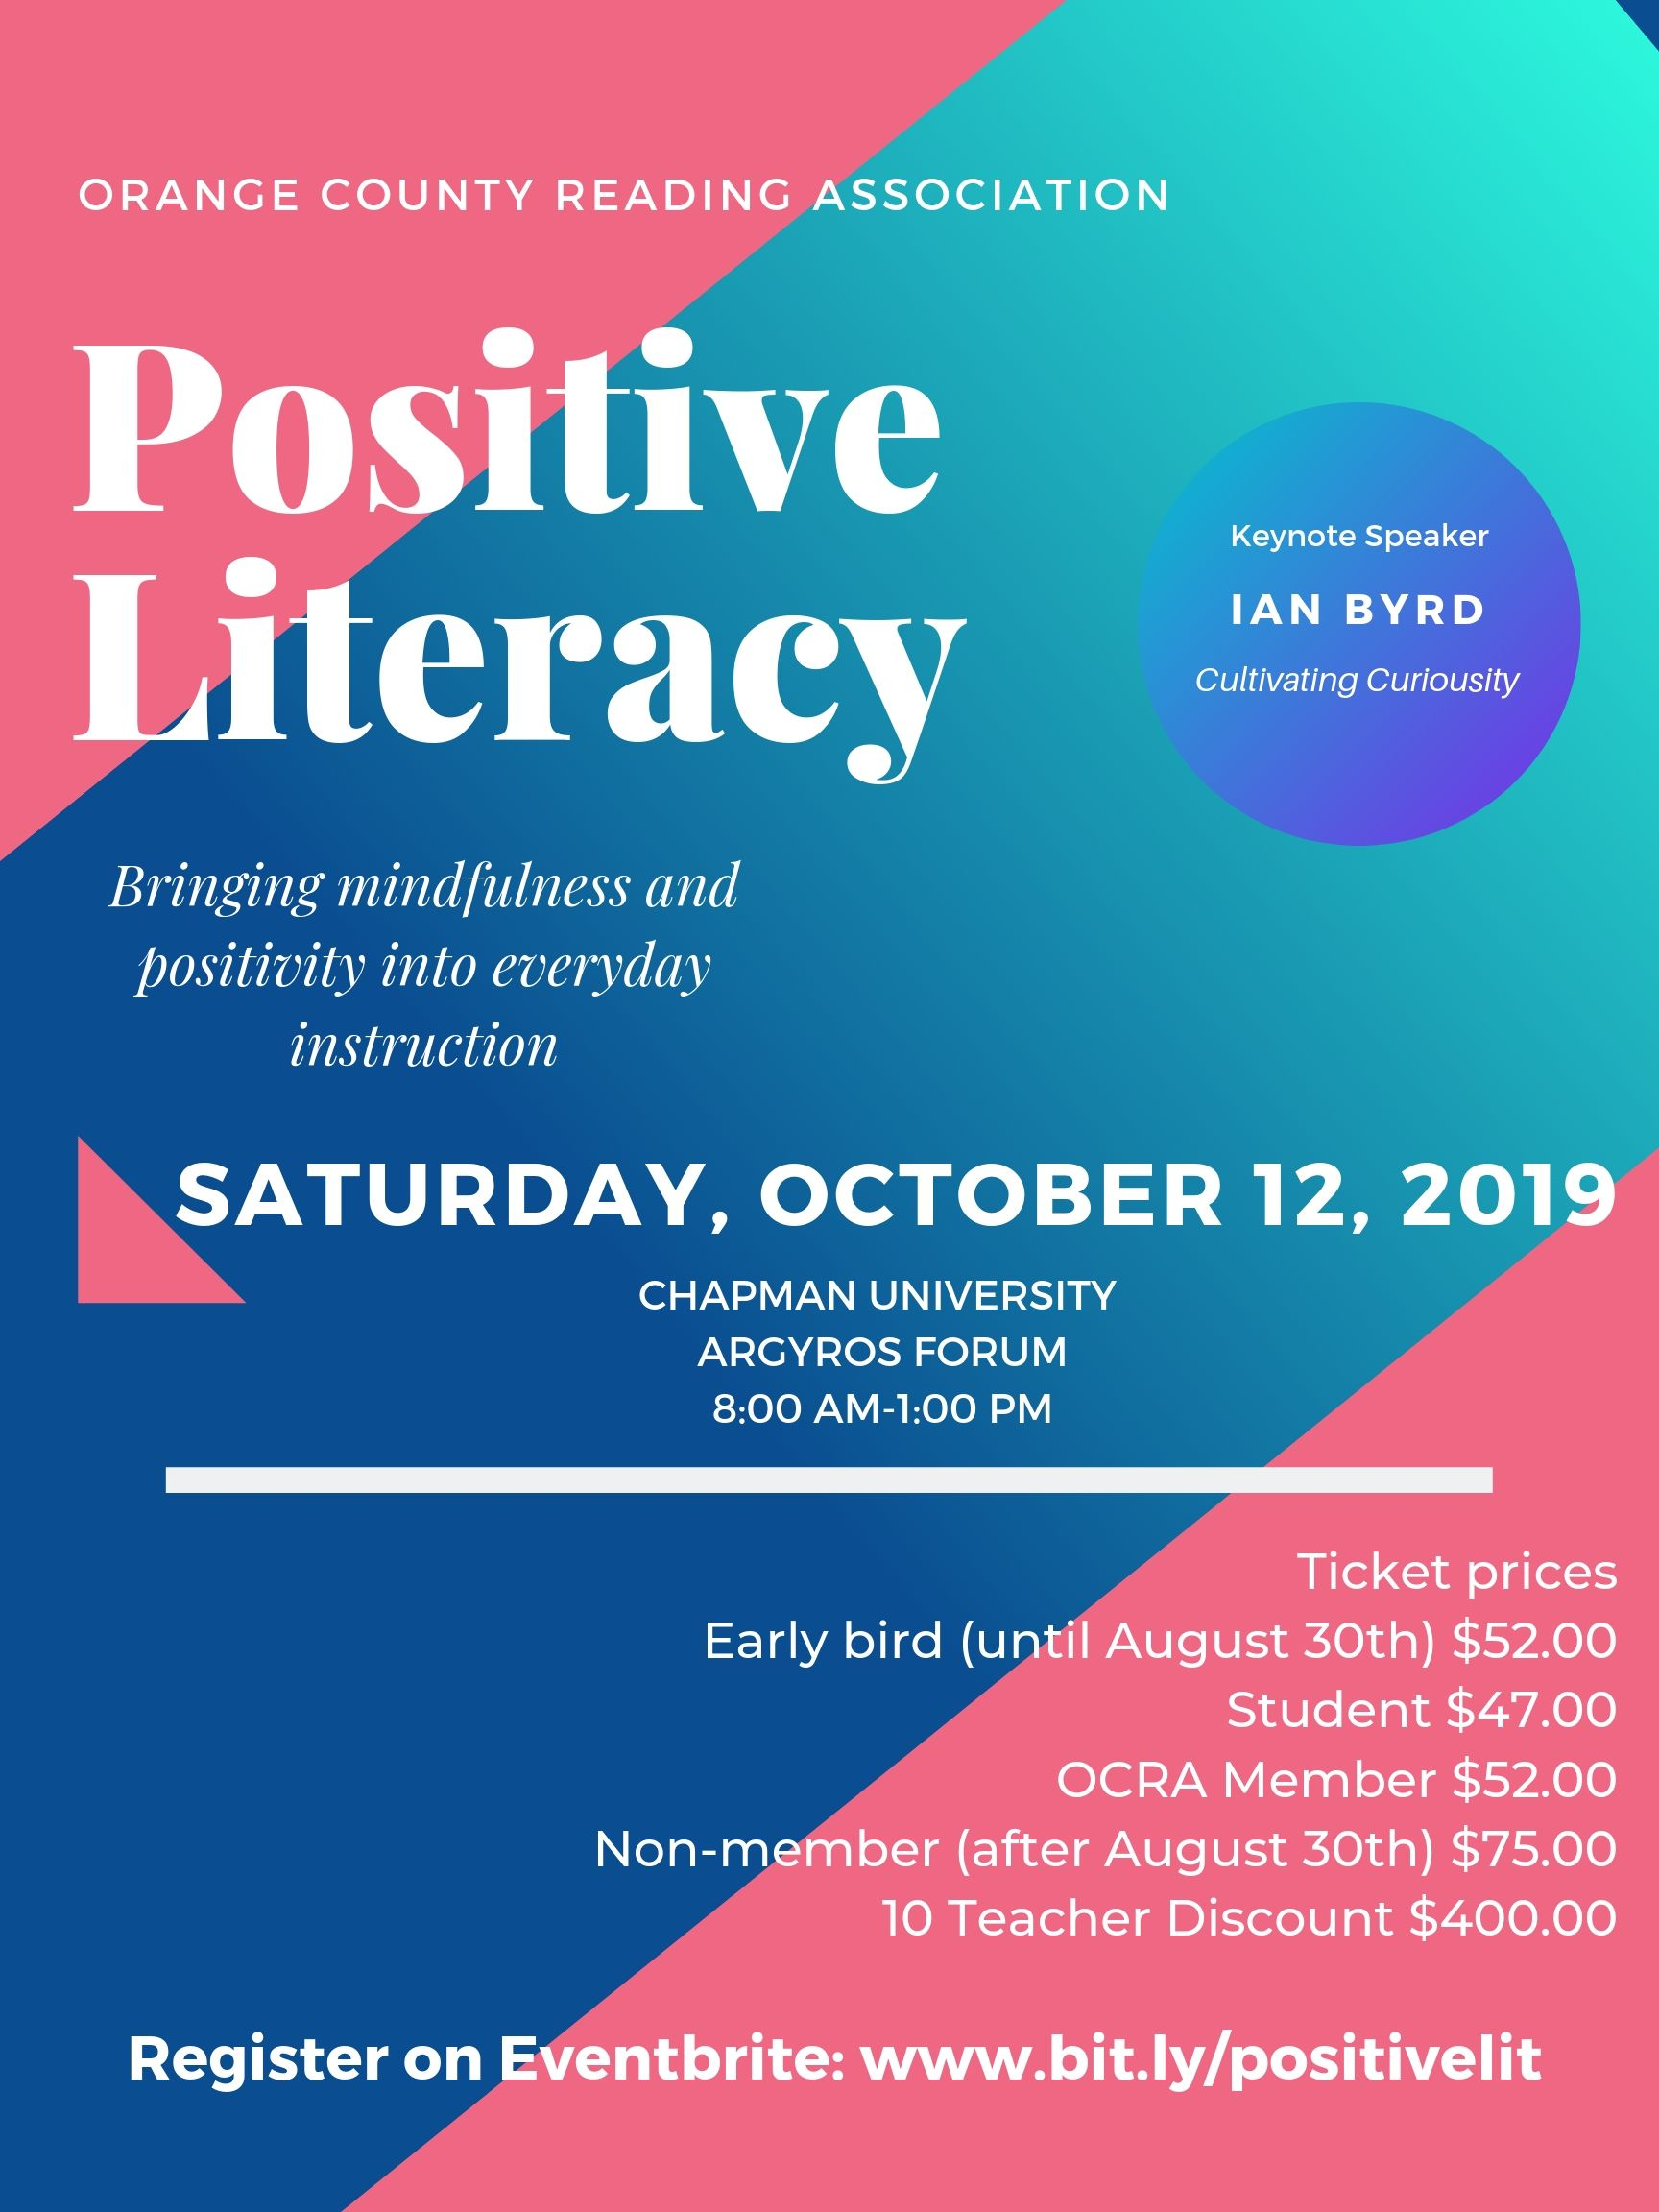 Save the Date: Saturday October 12th